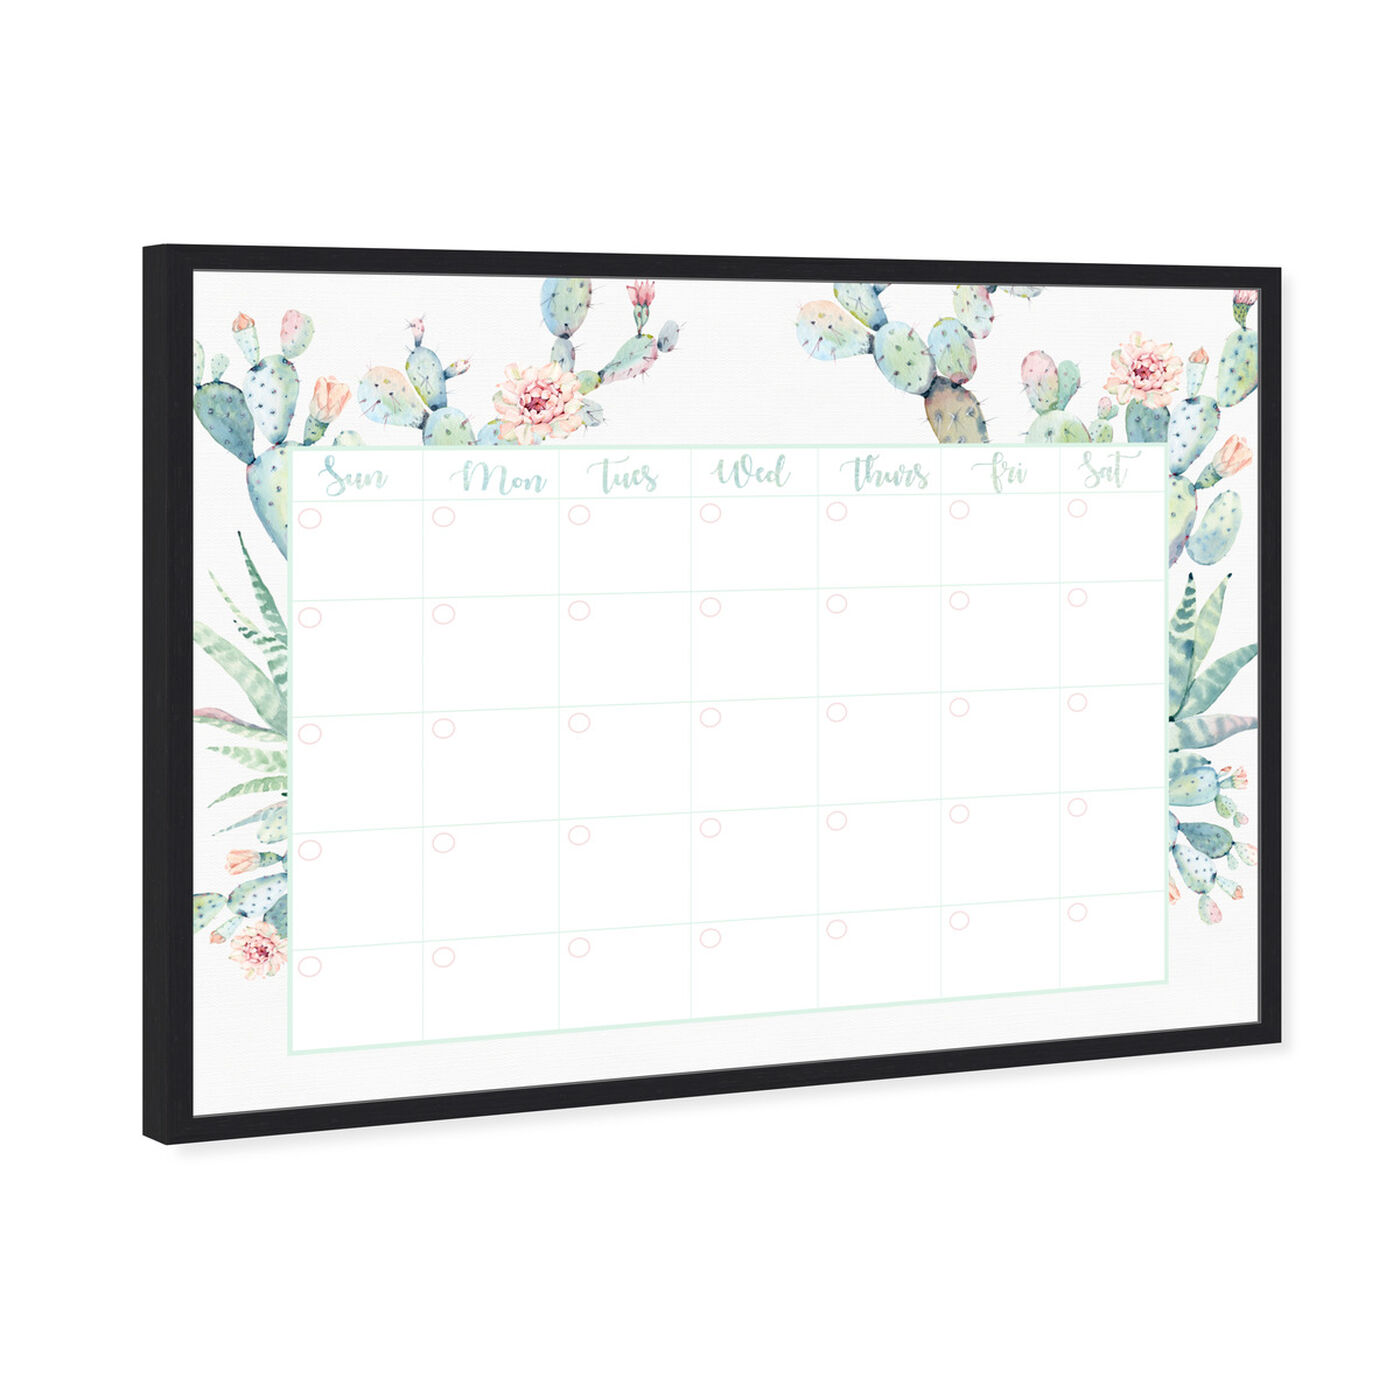 Angled view of Cactus Monthly Calendar featuring education and office and whiteboards art.